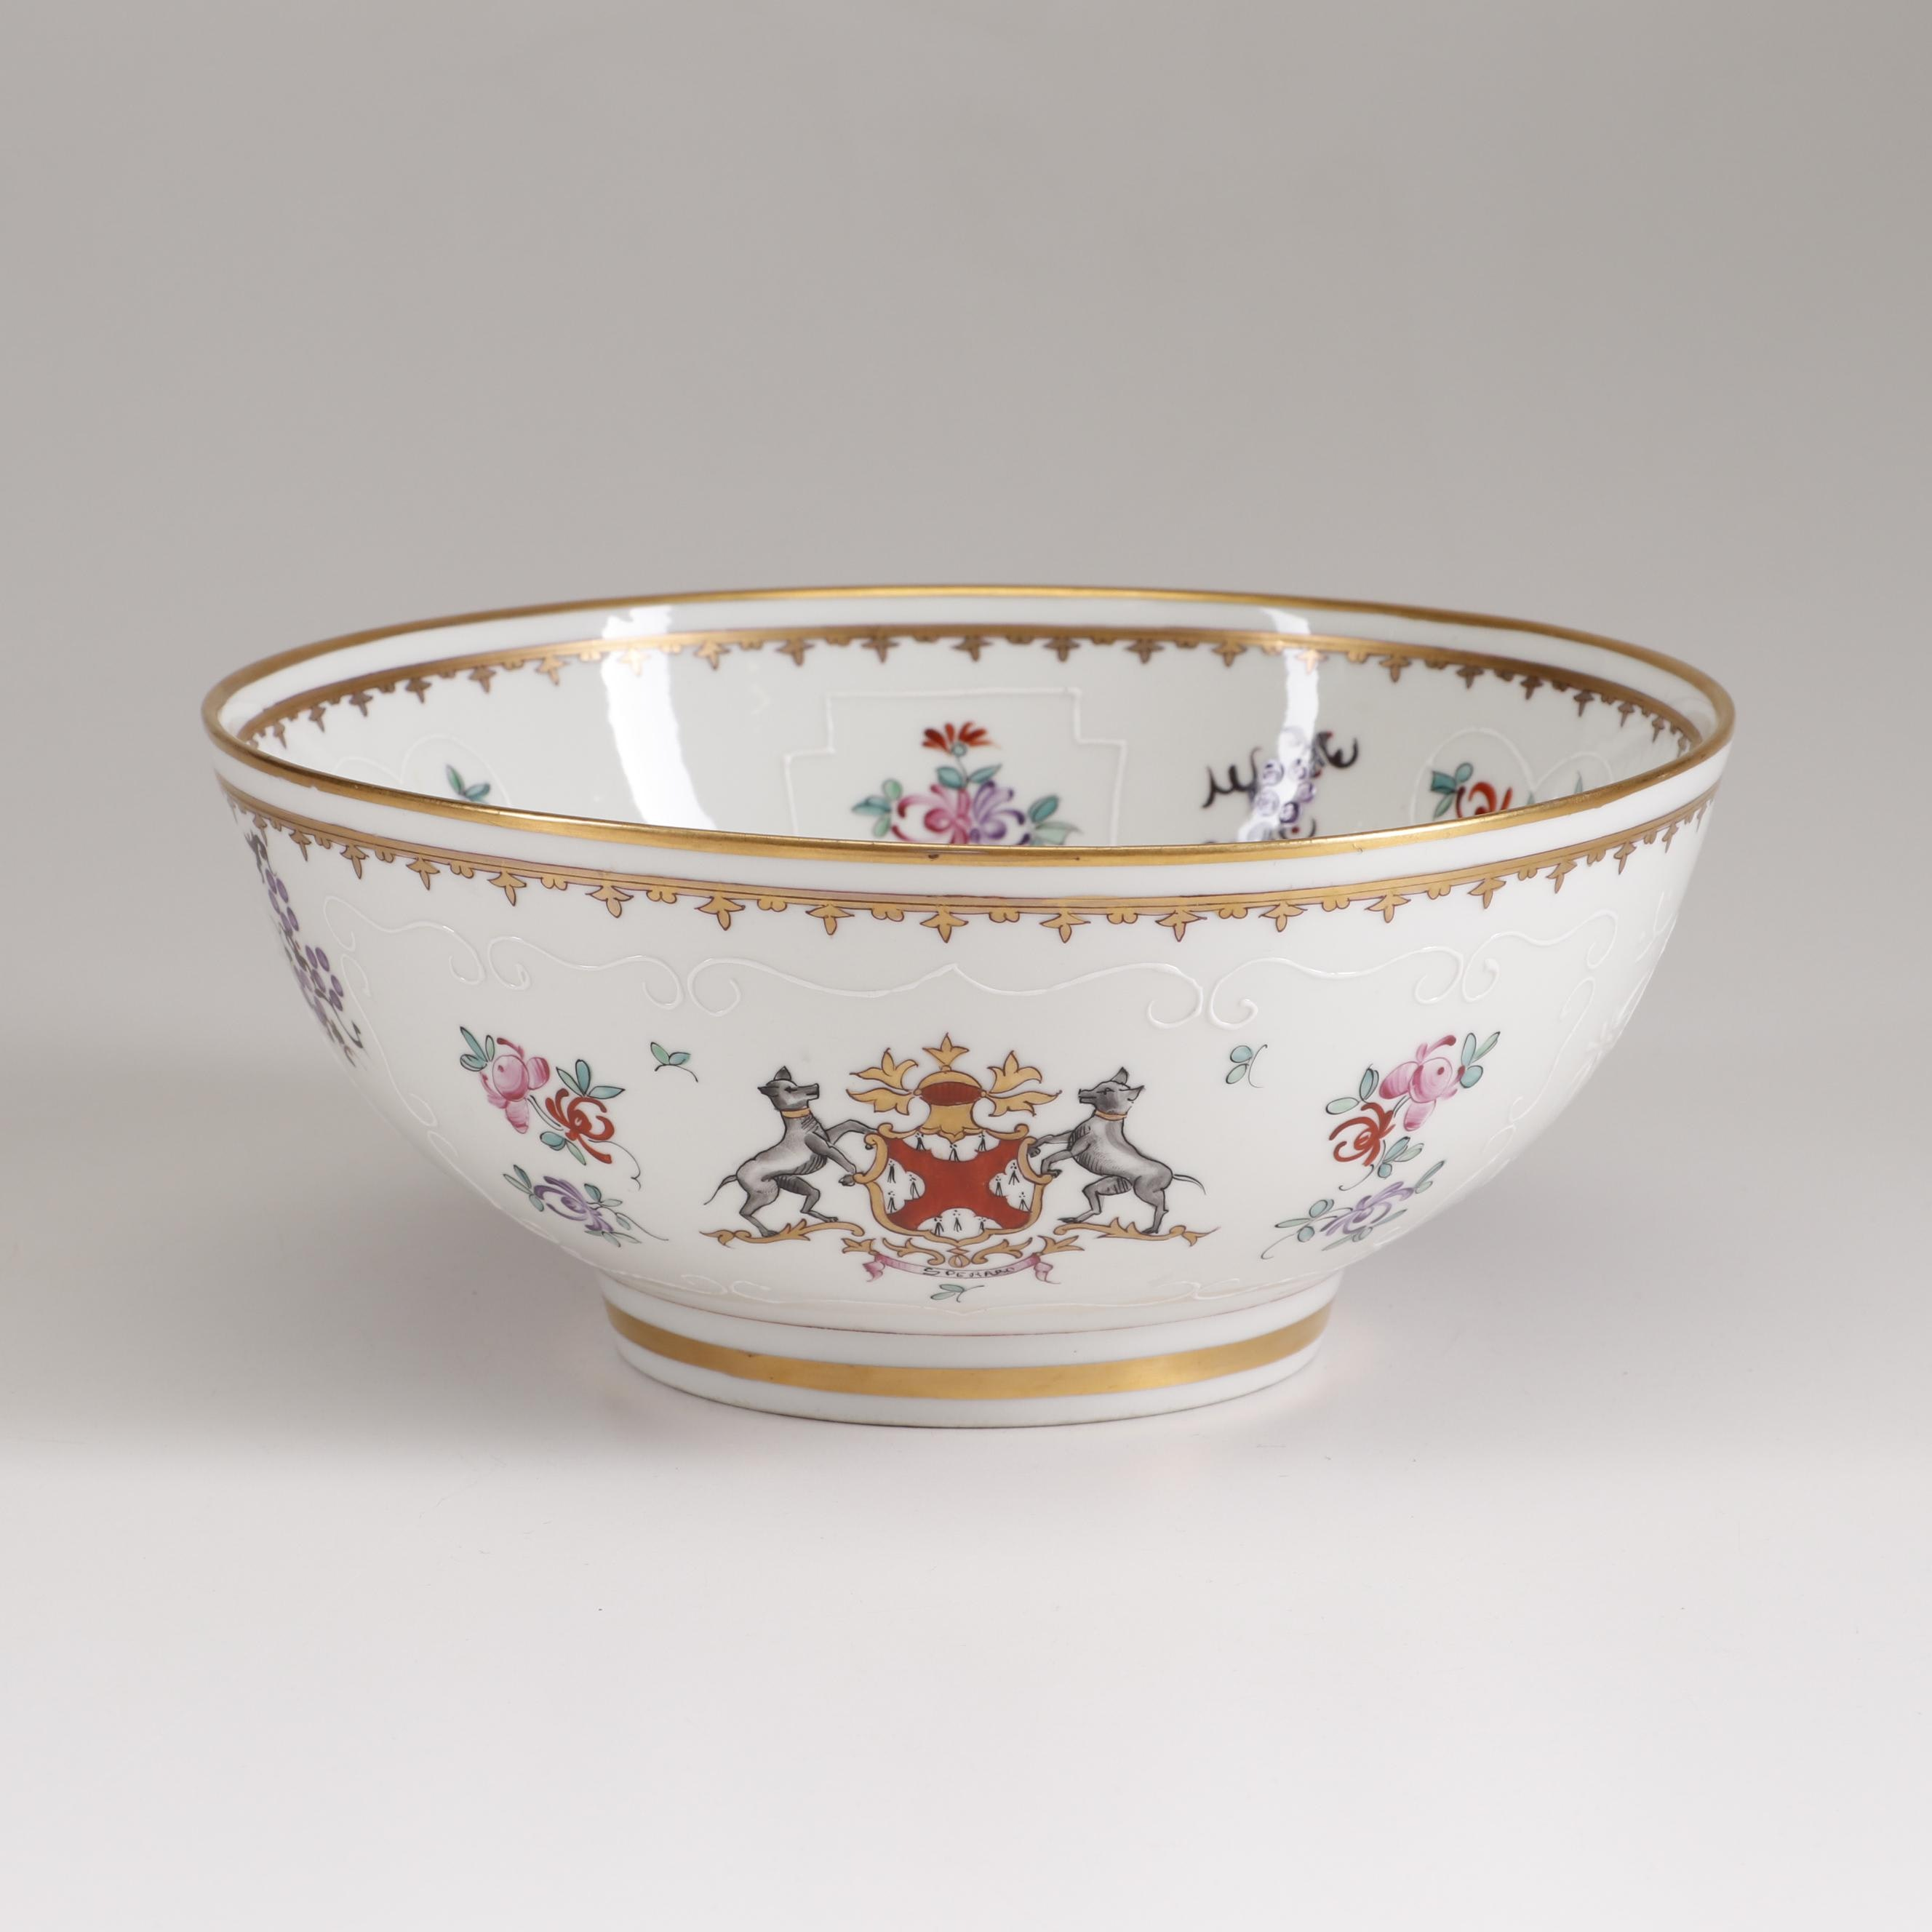 French Hand-Painted Gold Embellished Porcelain Centerpiece Bowl